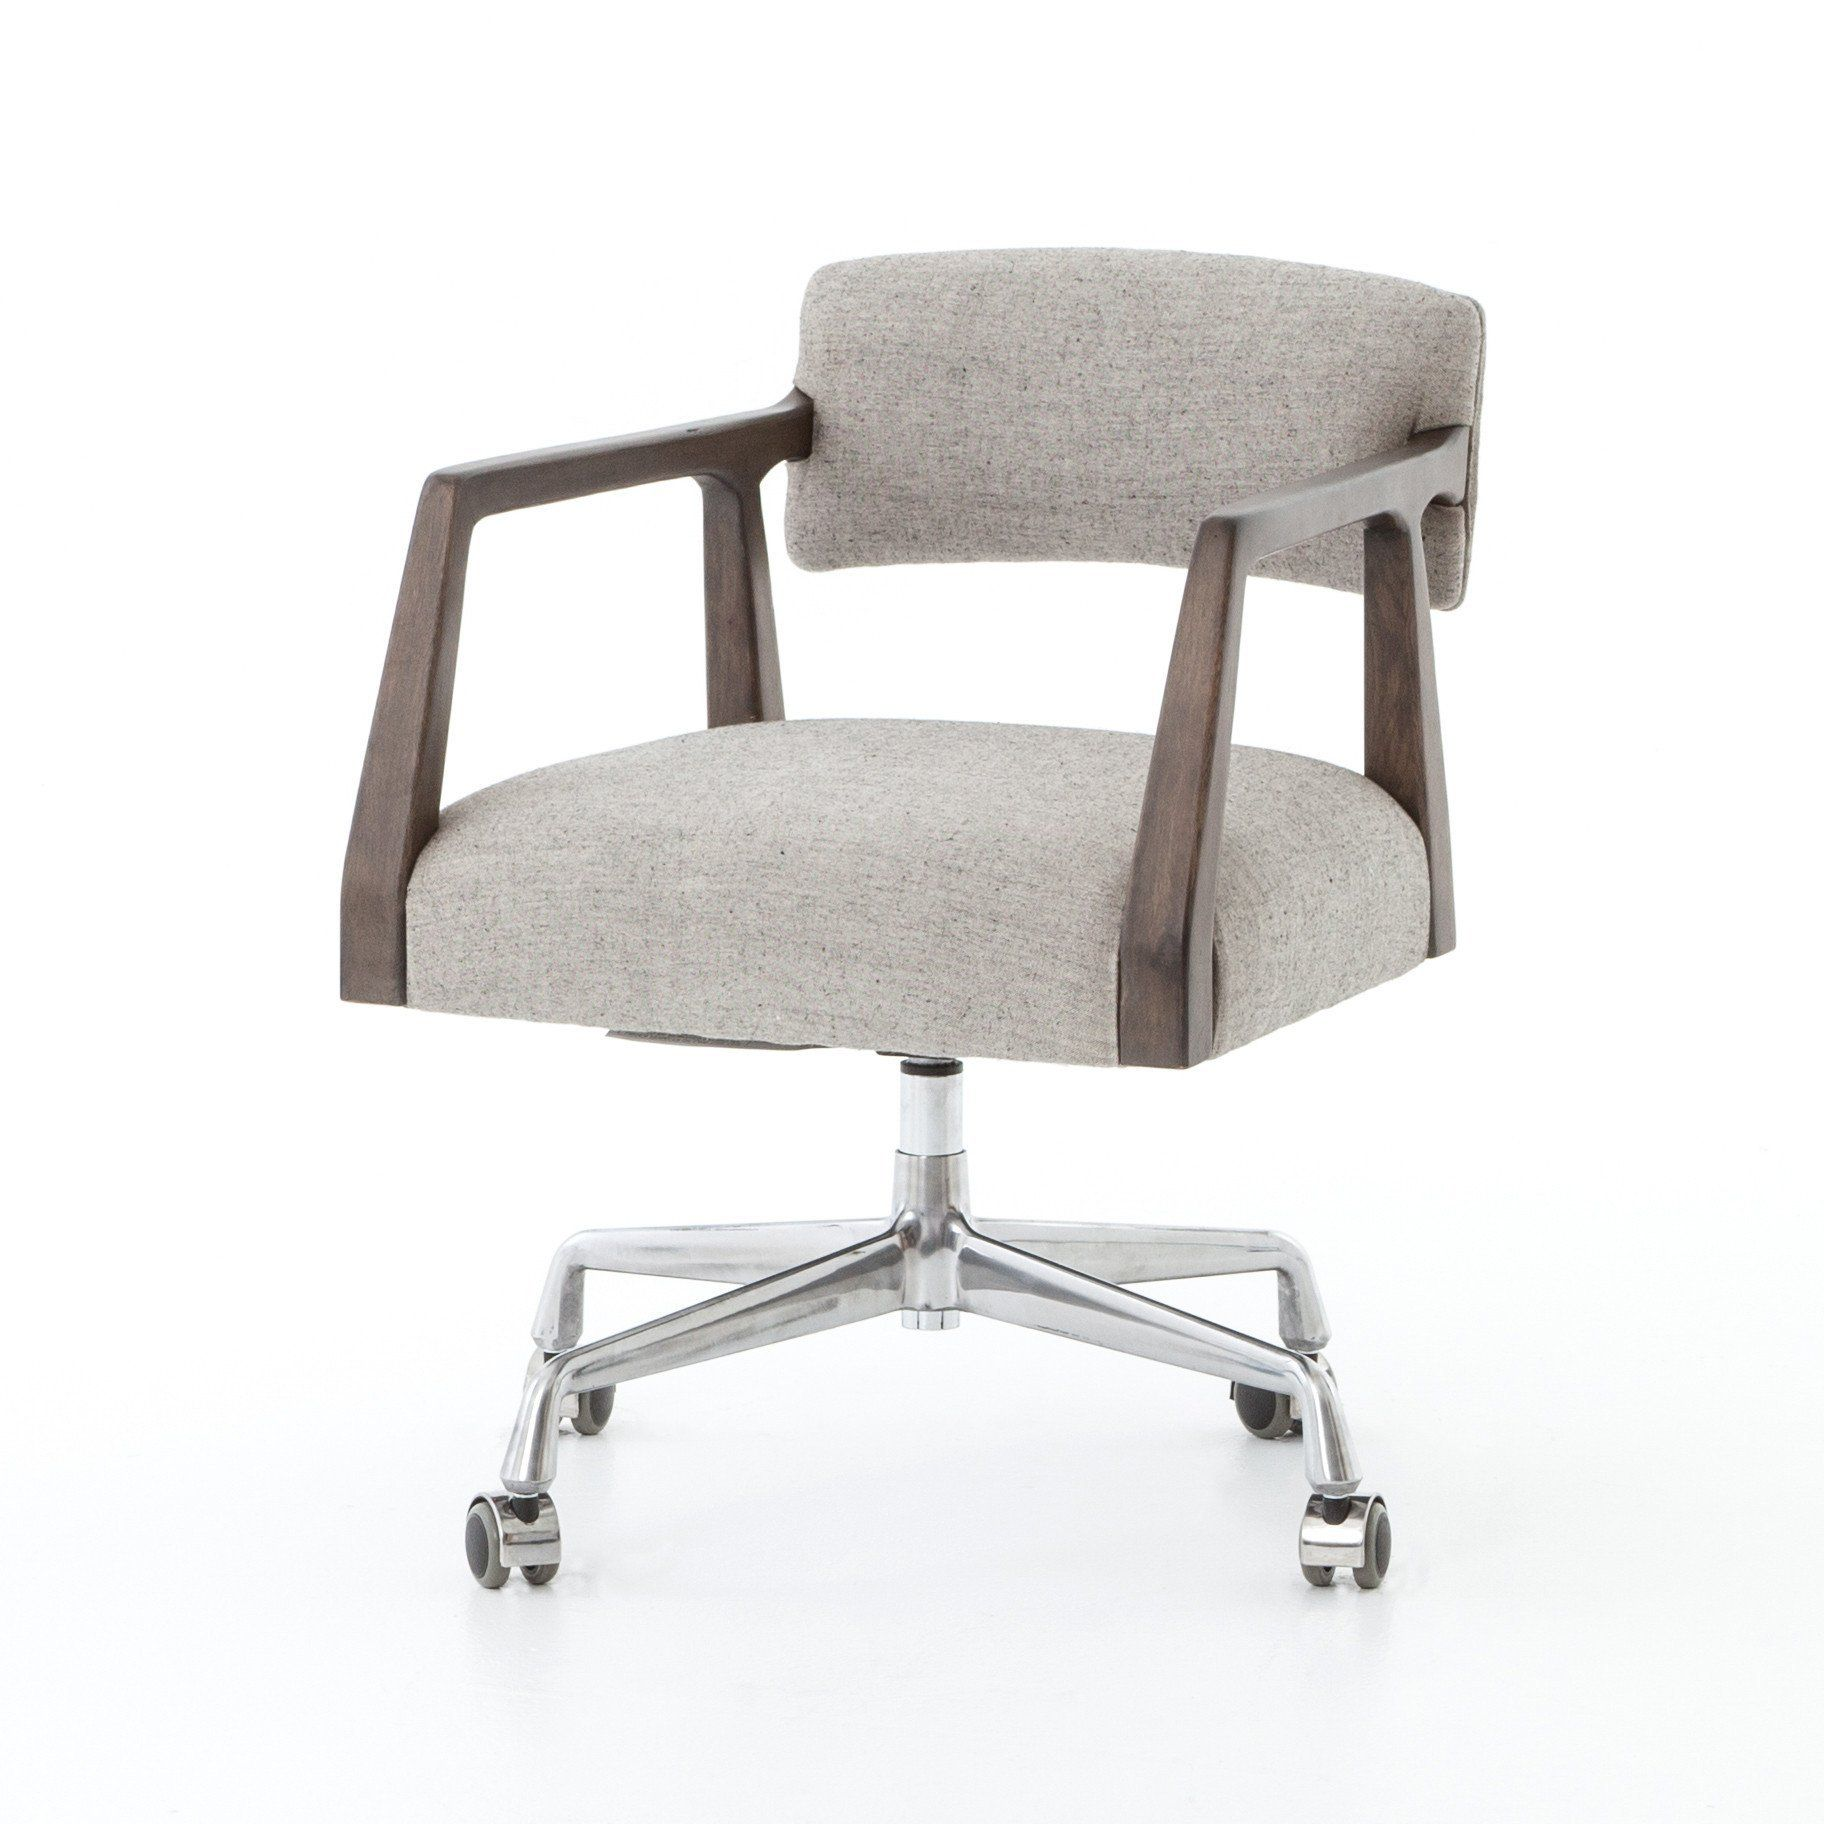 target walmart office chairs frame slate furniture graphite computer leather desk grey chair australia uk cover